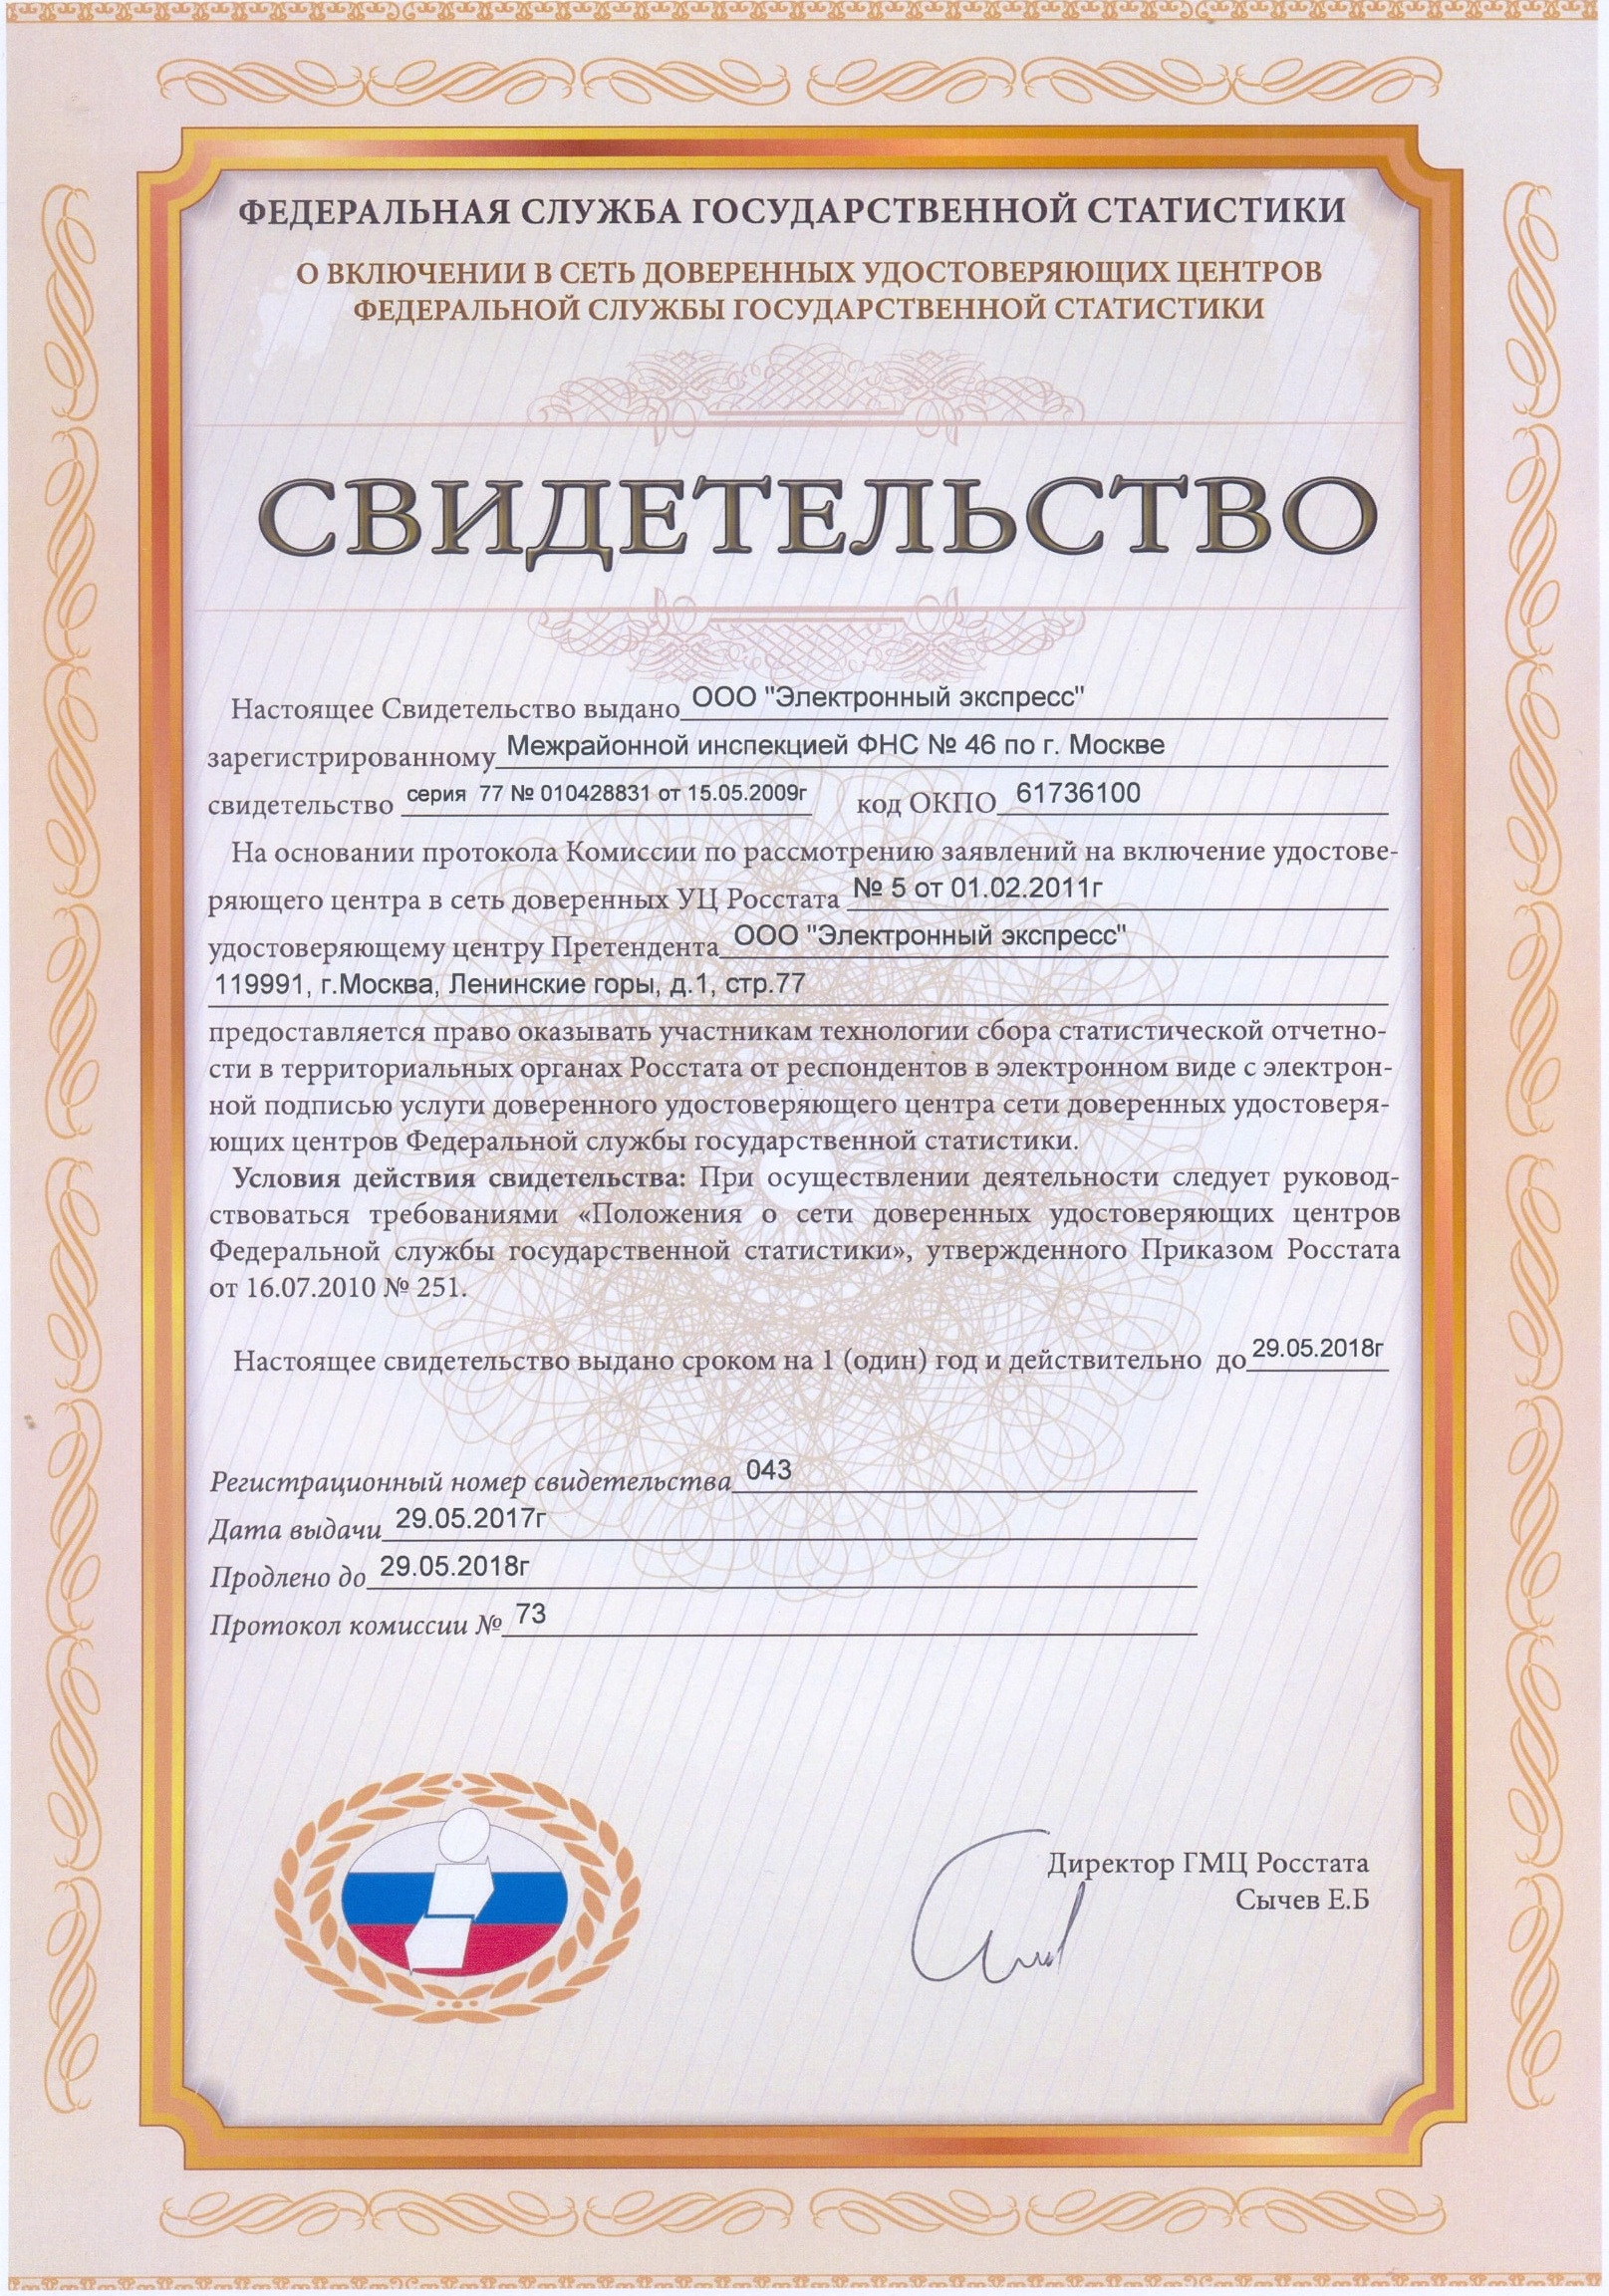 licenses_and_certificates_4